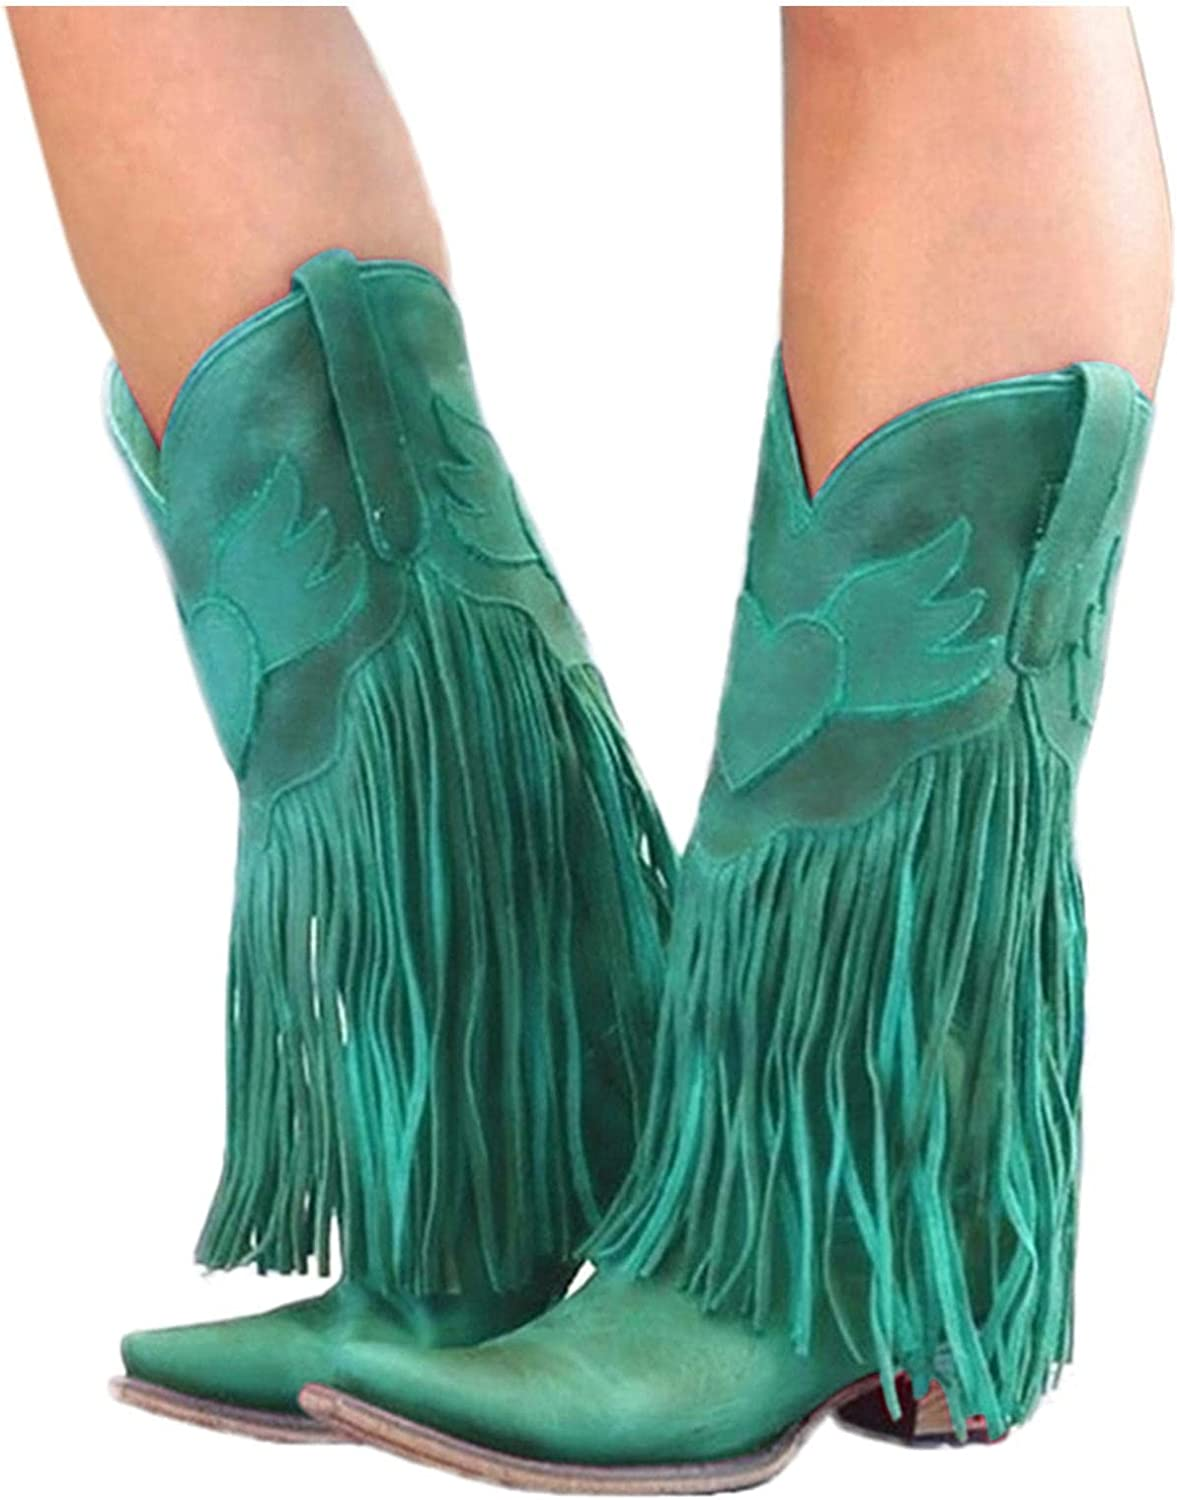 NarZhou Boots for Women Platform Purchase Low- Tassel Ankle Selling rankings Leather